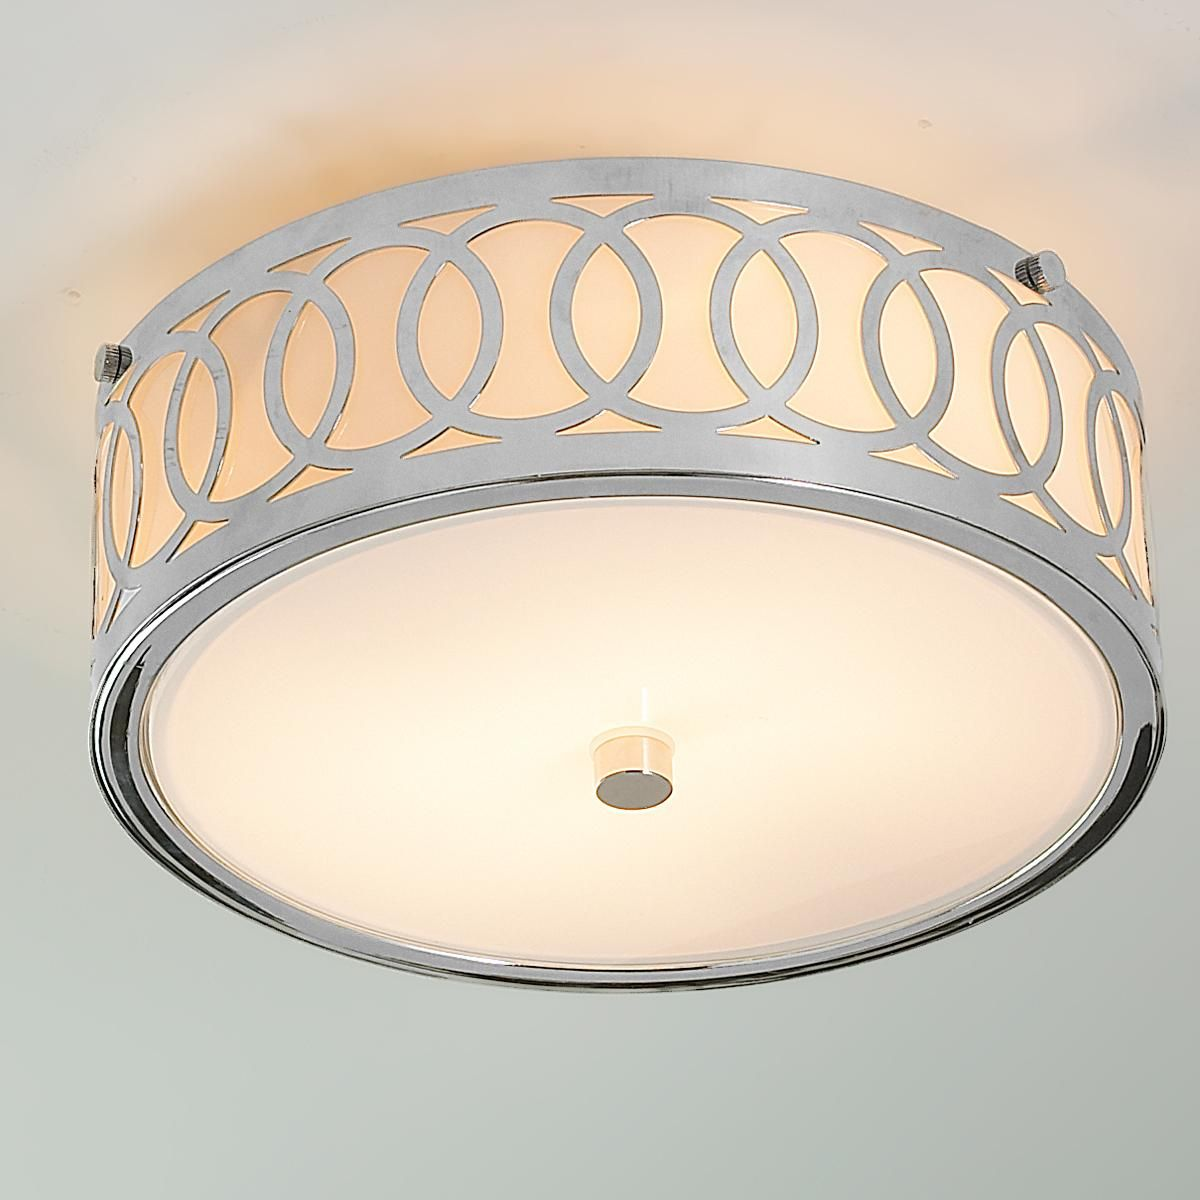 Small interlocking rings flush mount ceiling light flush for Small flush mount lights